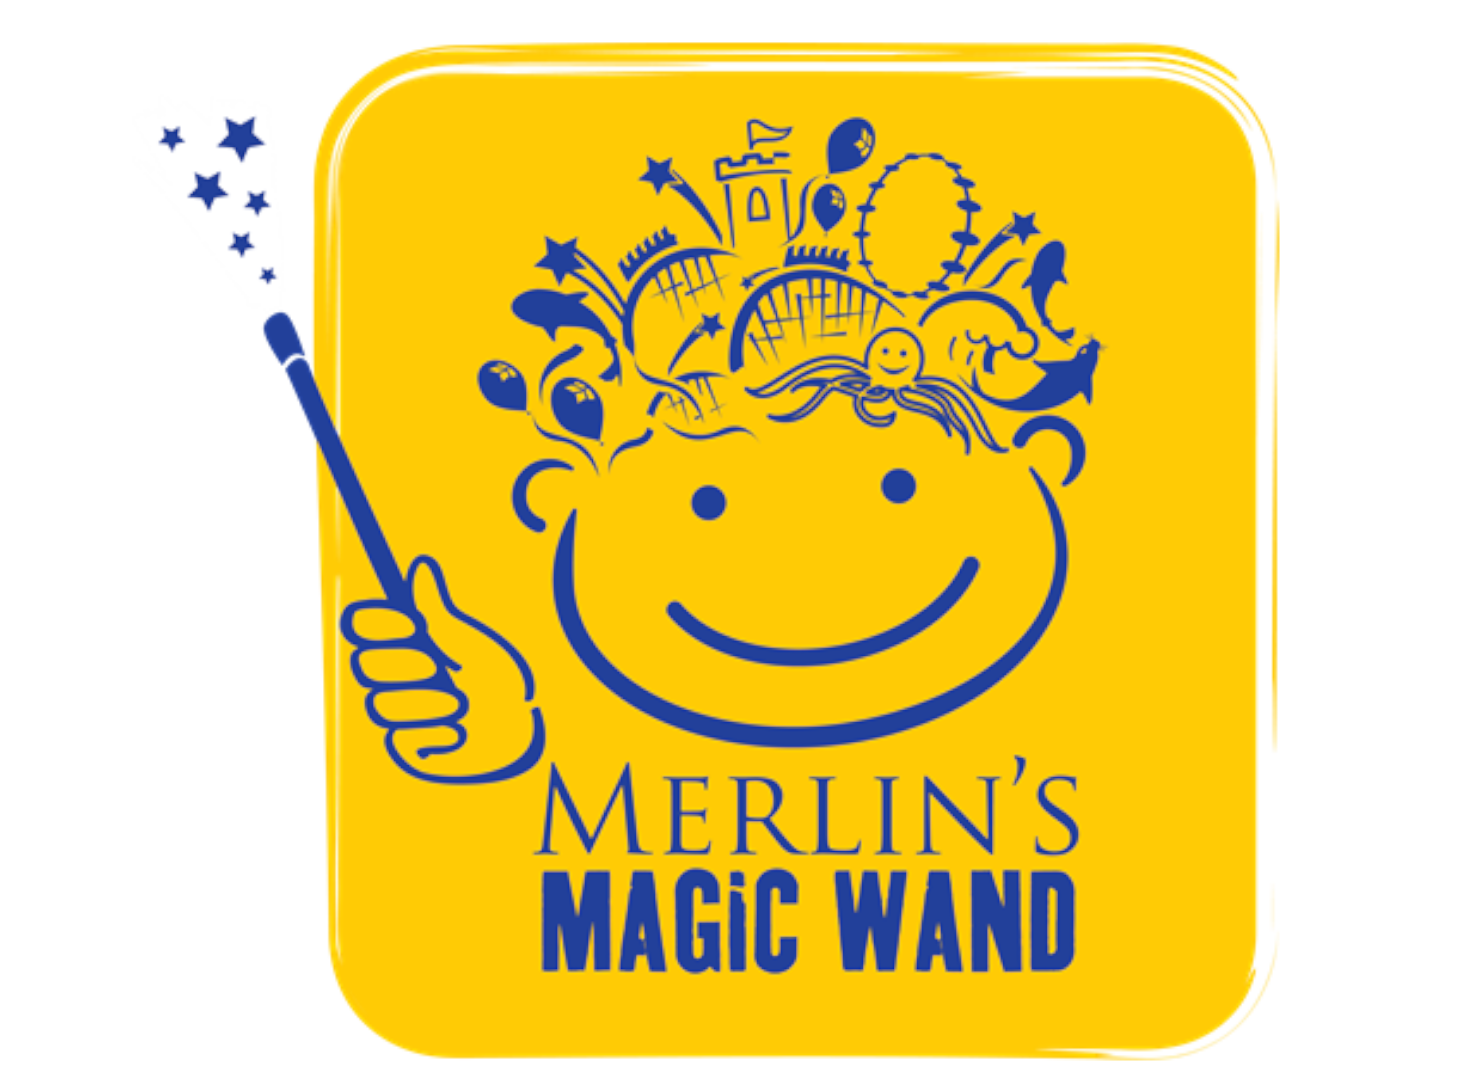 Merlins Magic Wand